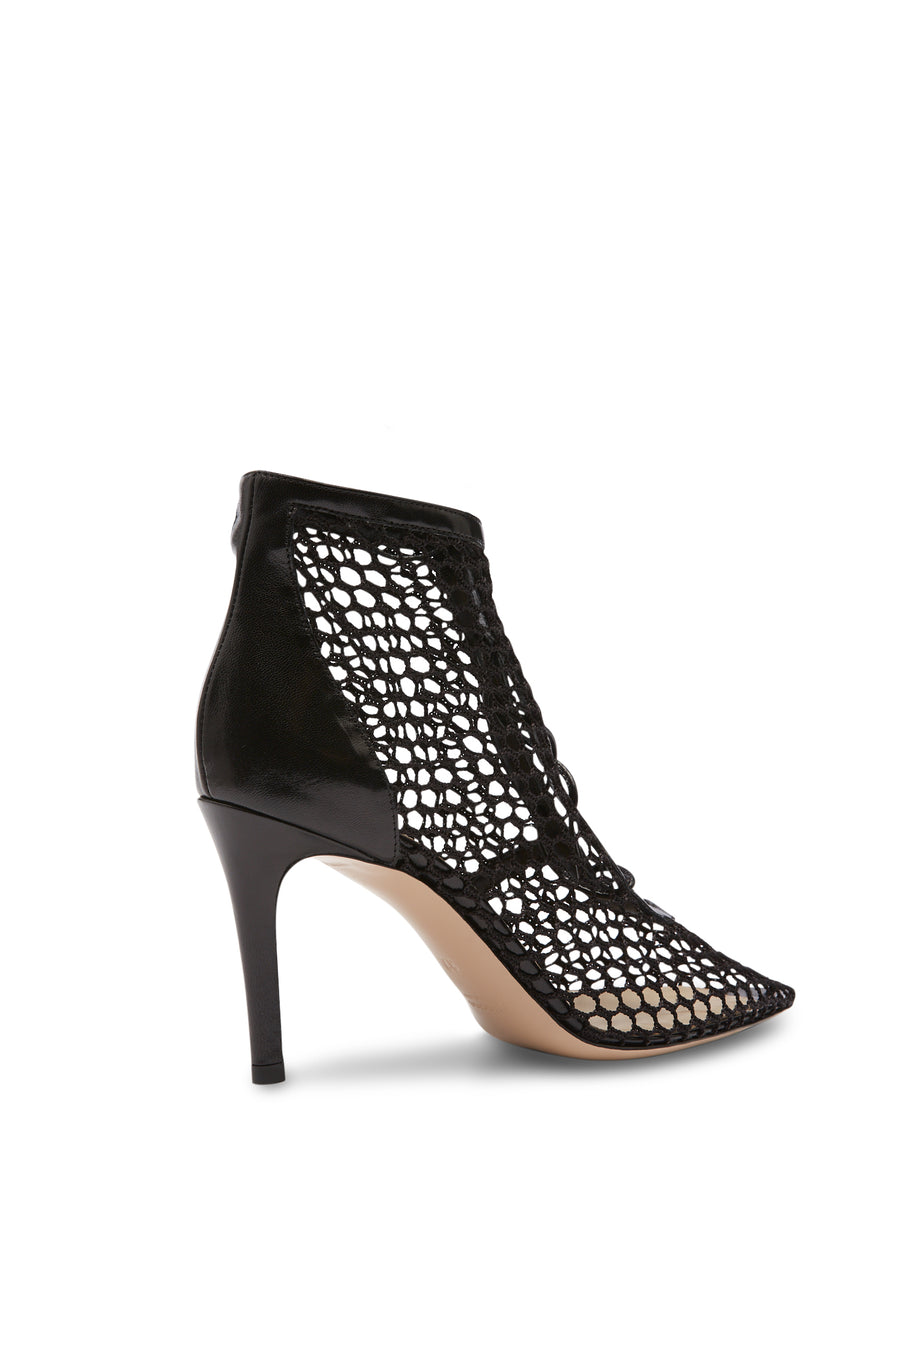 Meshed Heeled Bootie, Pointed Toe, Color Black